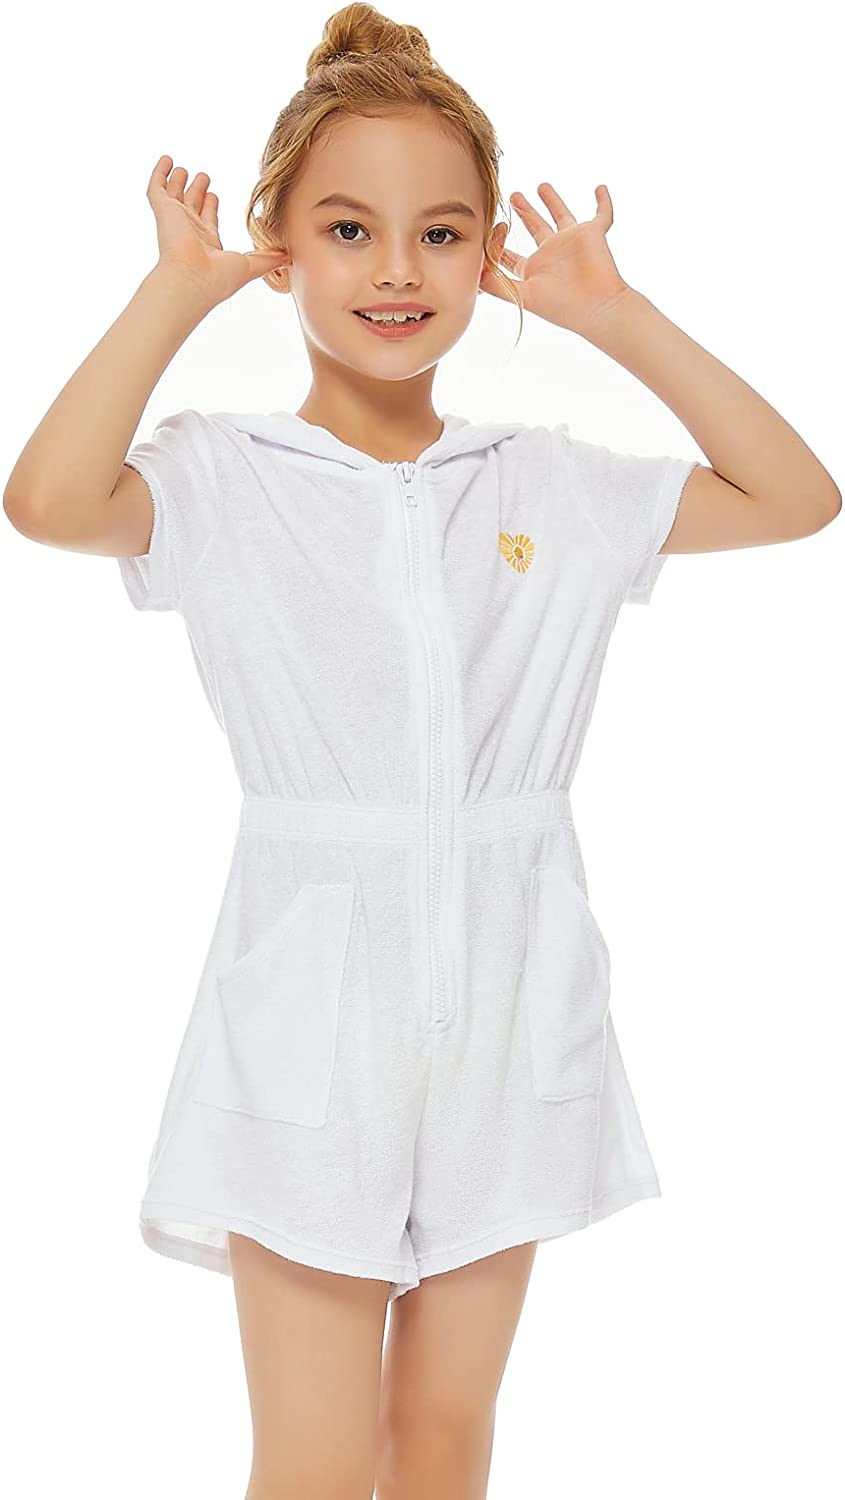 Talgat Cover-Up for Girls Hooded Terry Swim Cover Up